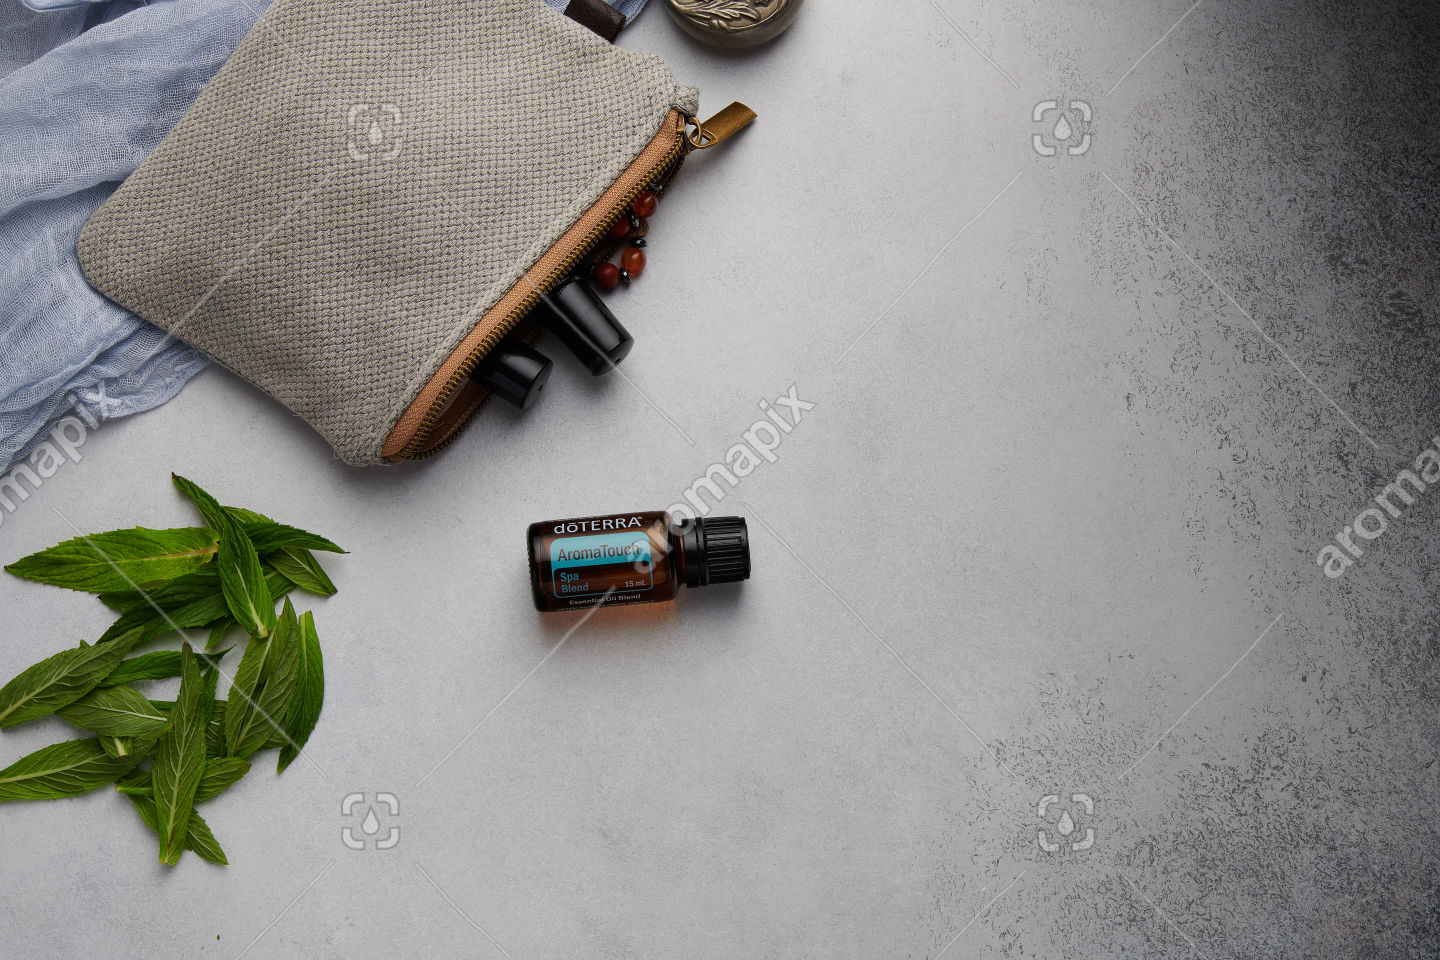 doTERRA AromaTouch with mint leaves on white